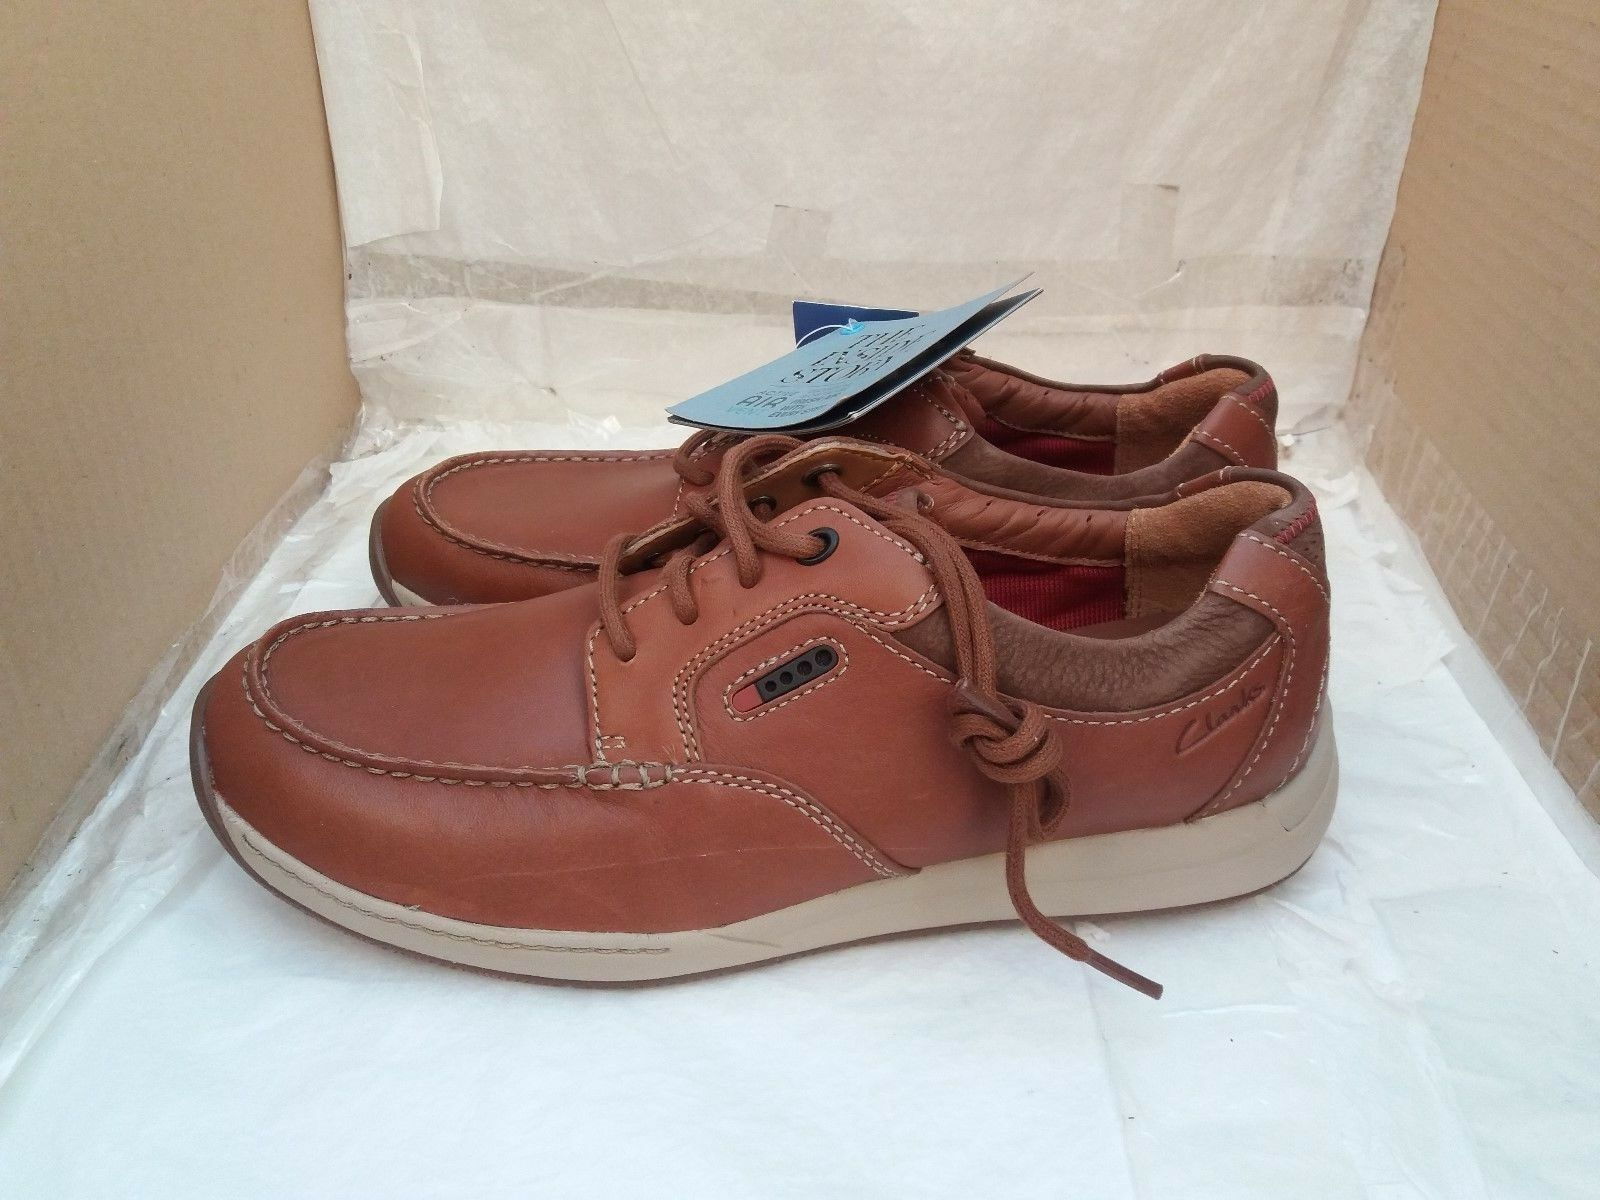 Clarks Javery Time Tan Leder Casual Up Lace Up Casual Schuhes With Actve Air Vent - UK 8H a3f478